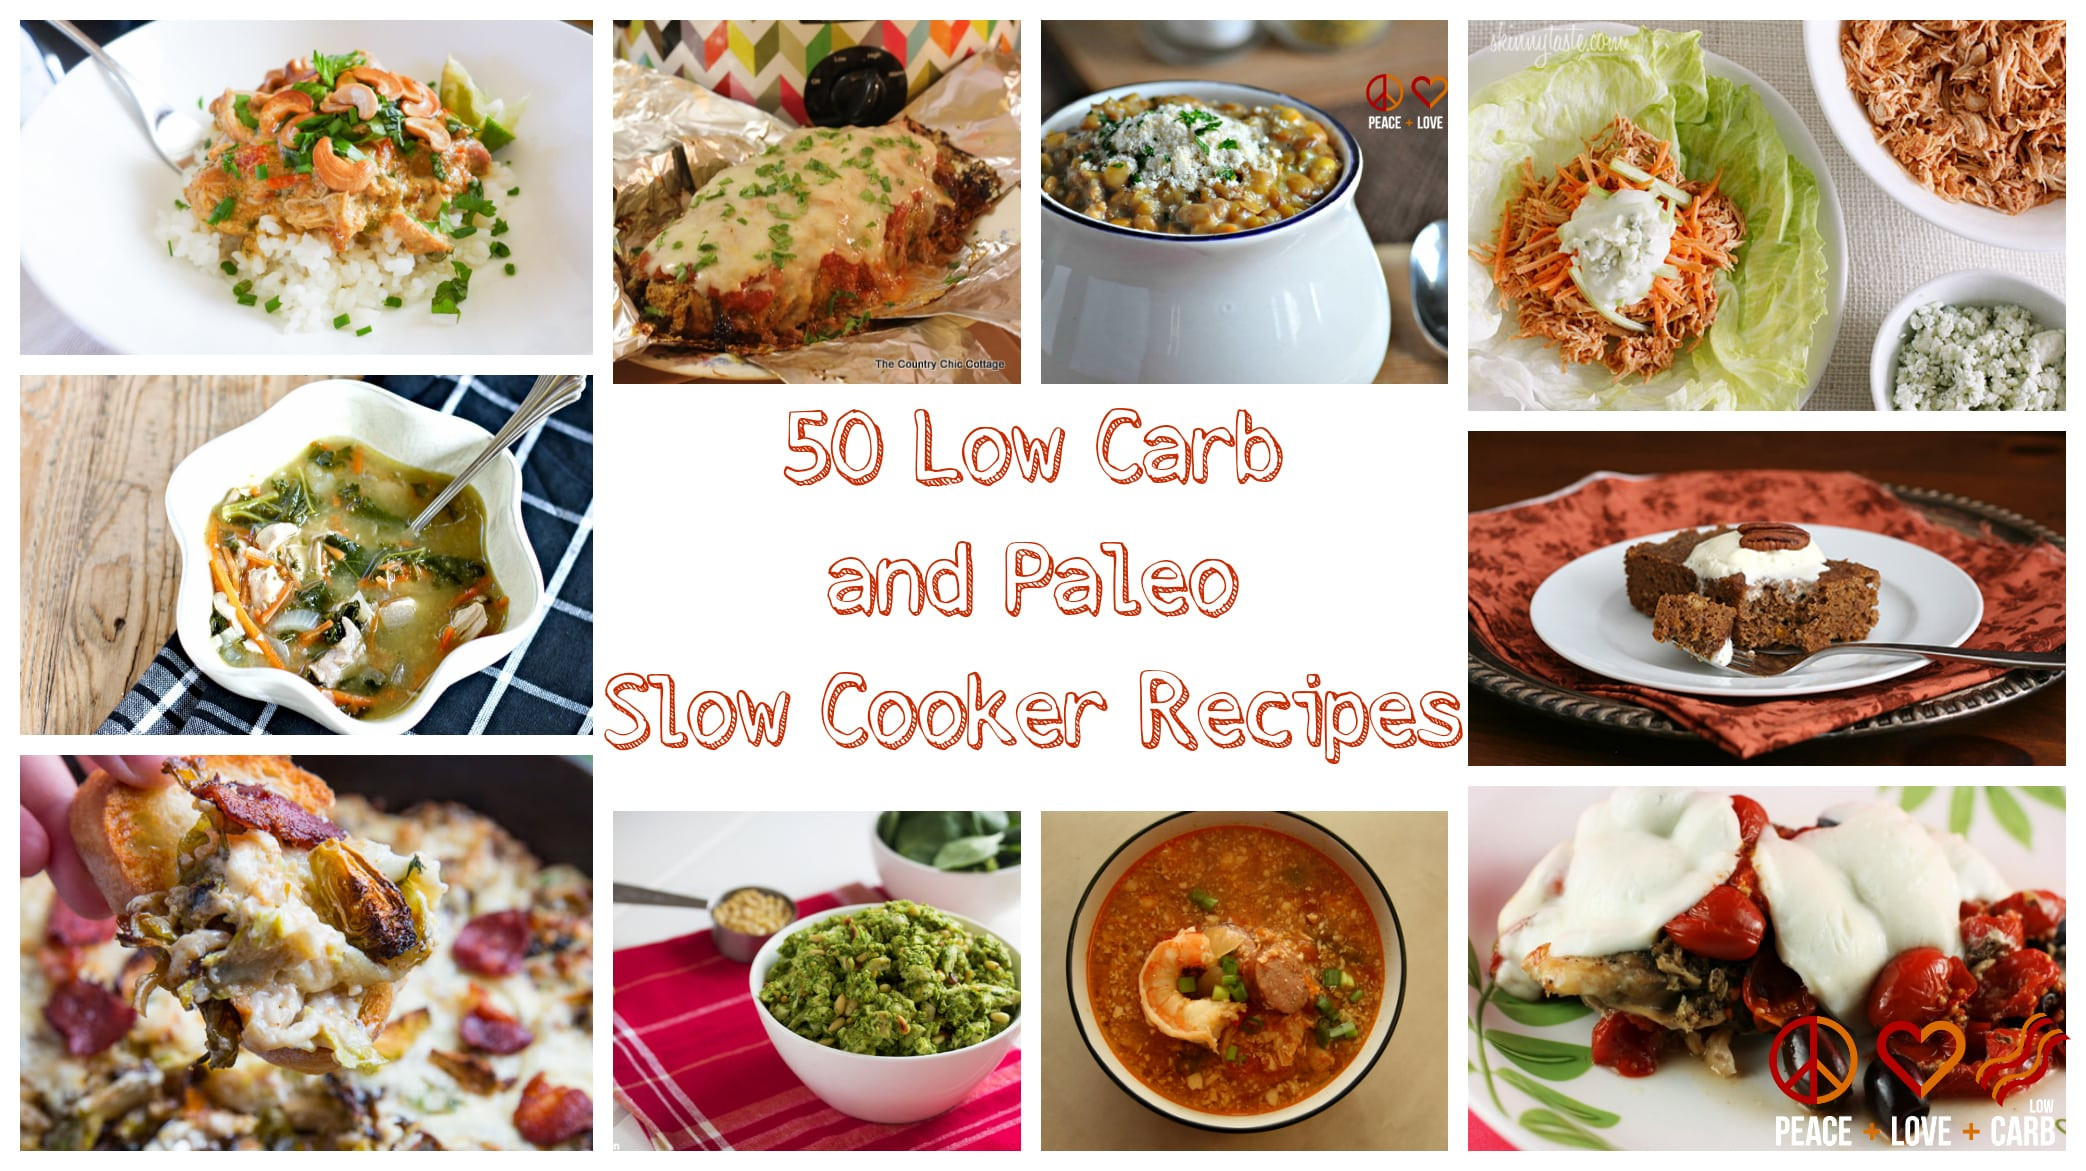 Low Carb Slow Cooker Recipes  50 Low Carb and Paleo Slow Cooker Recipes